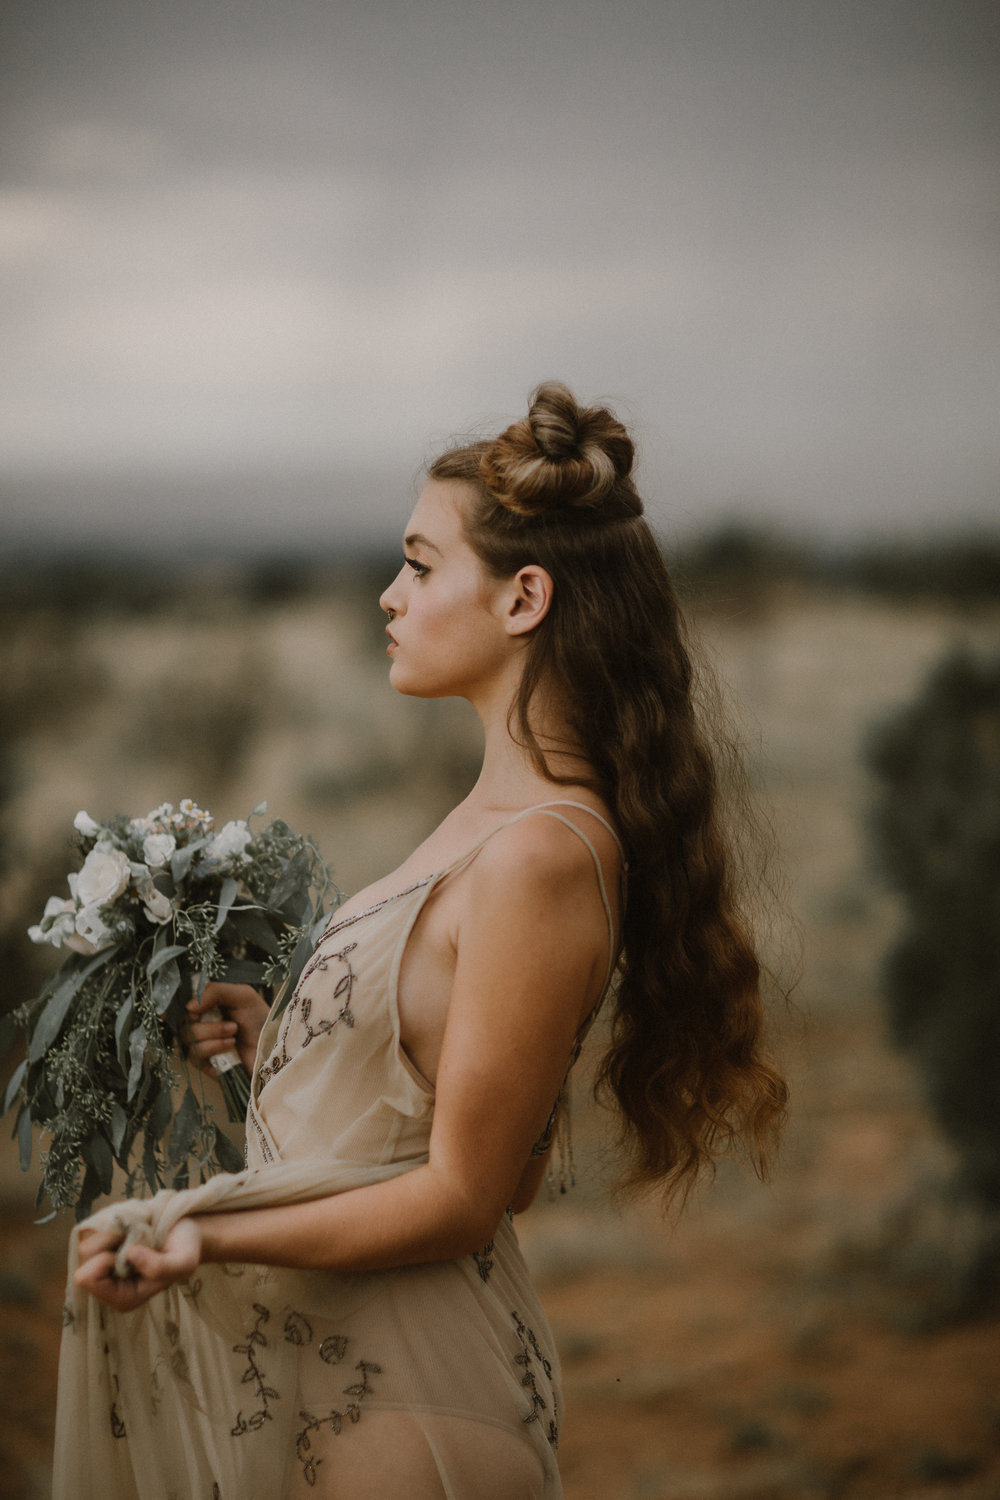 Editorial: New Mexico. Photographer: Blue Rose Studios. Model: Sophie Stroud.